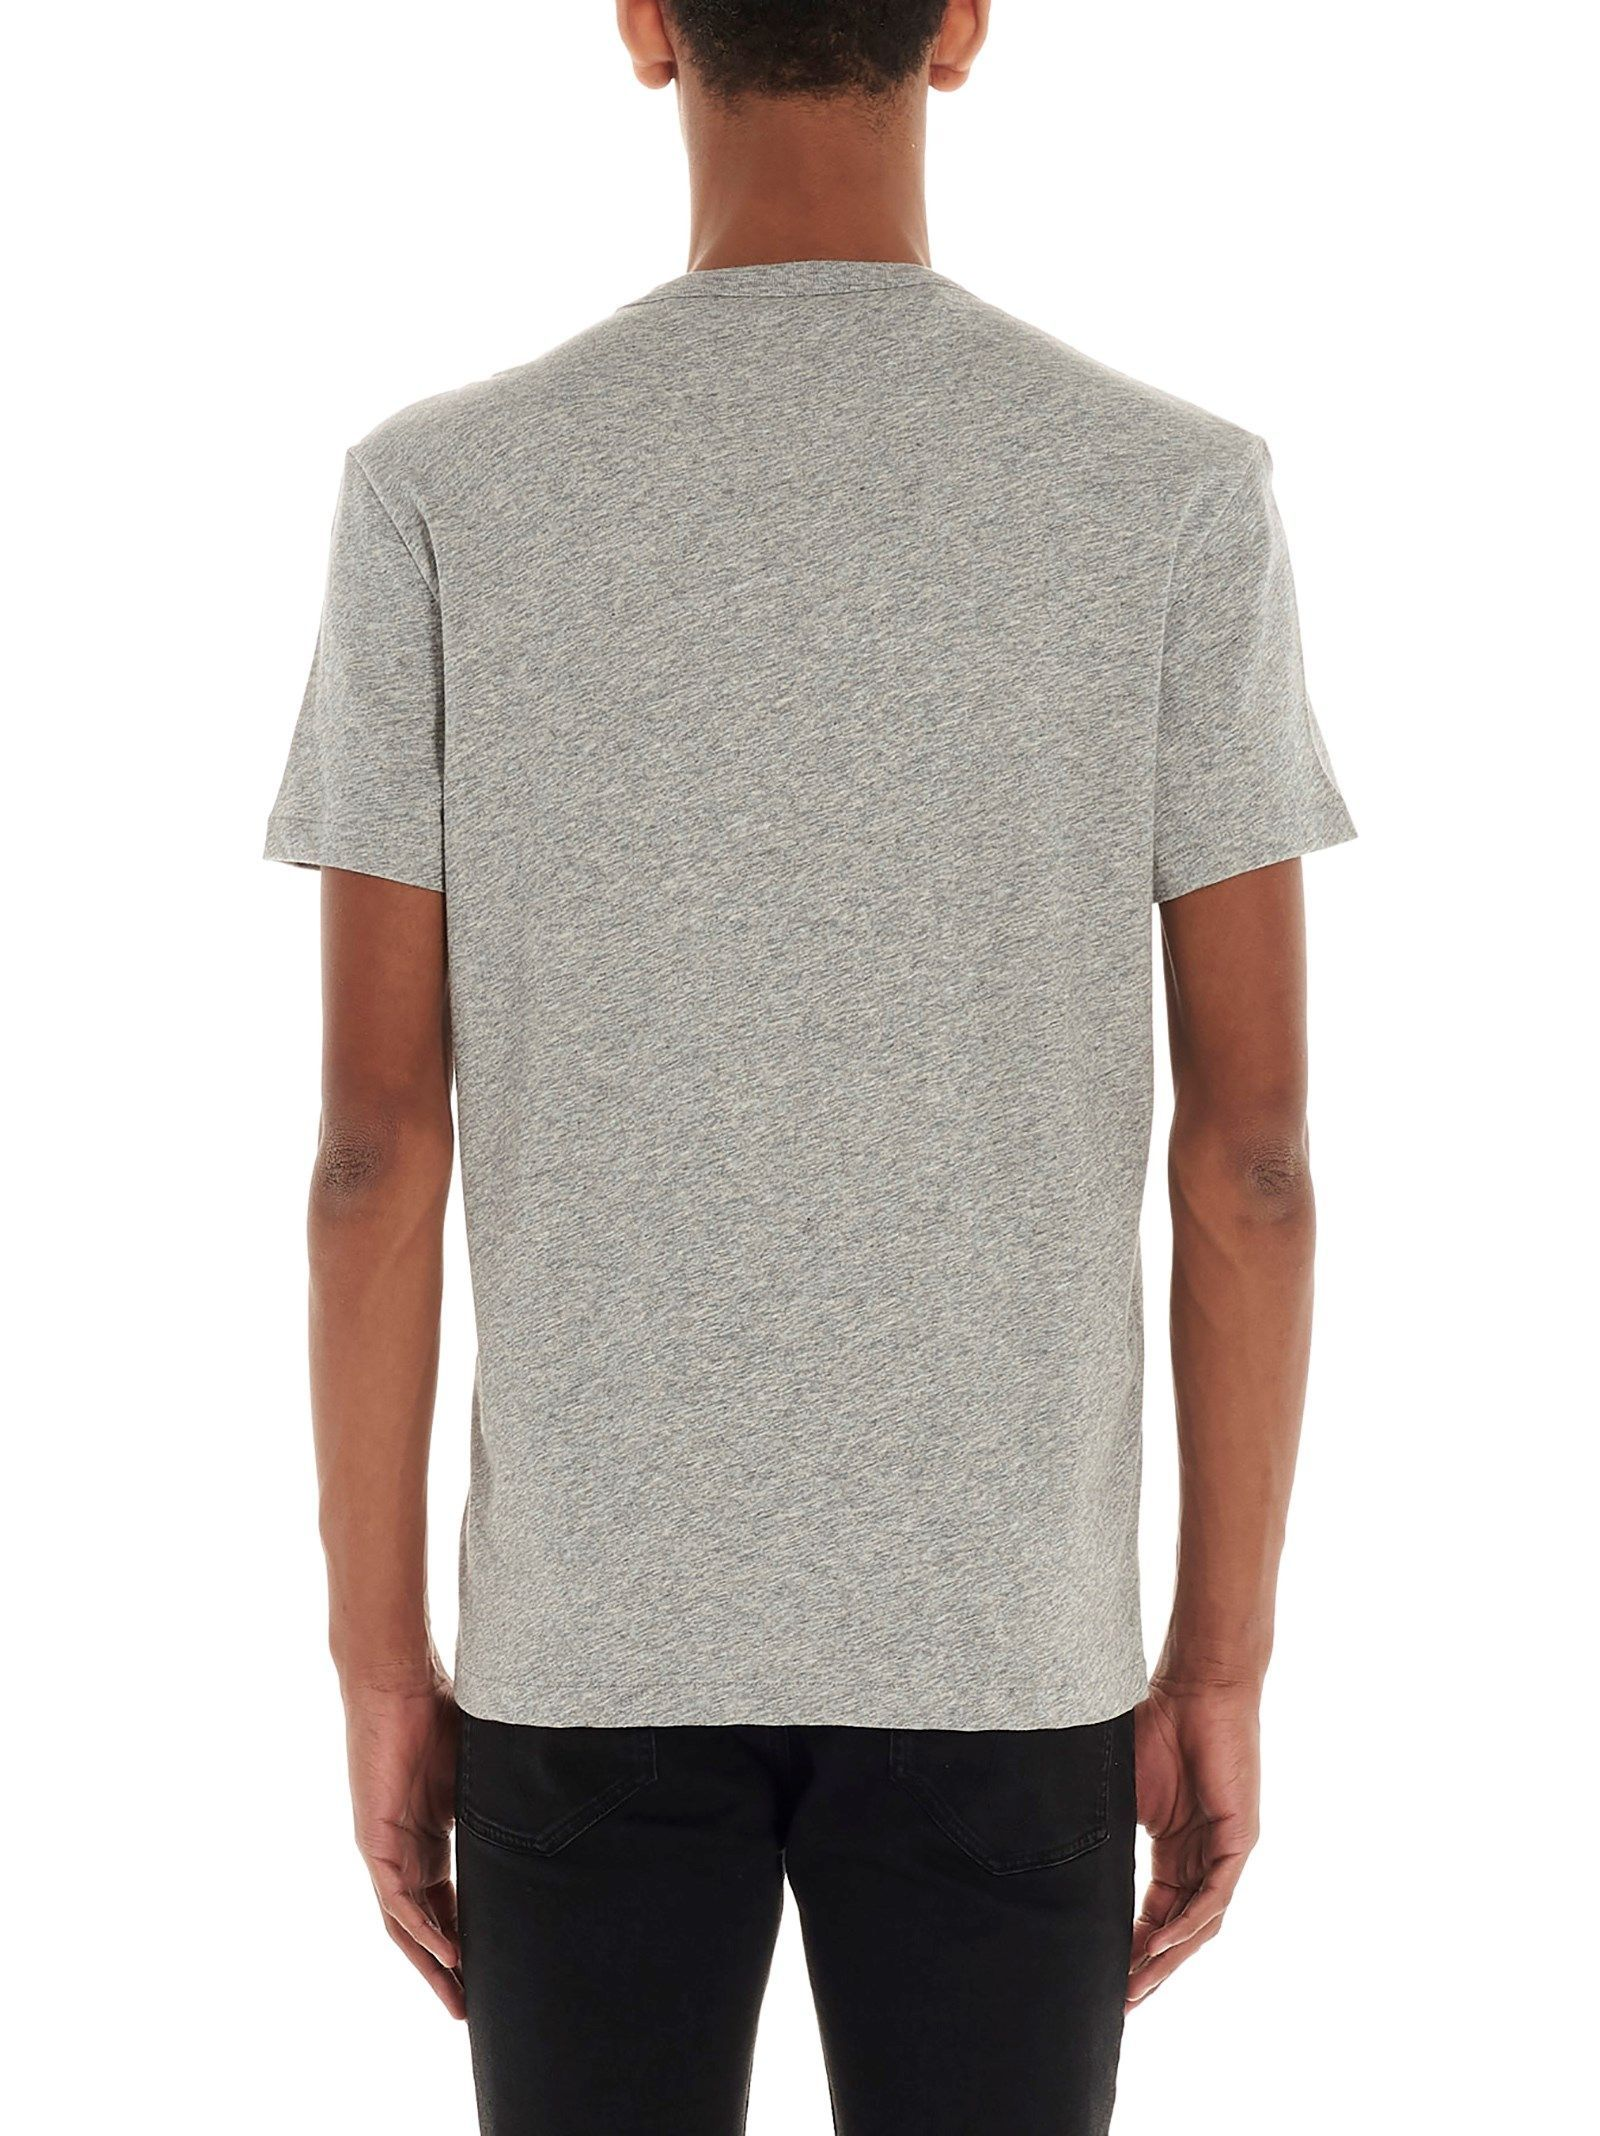 TOM FORD MEN'S BU402TFJ894K04 GREY COTTON T-SHIRT